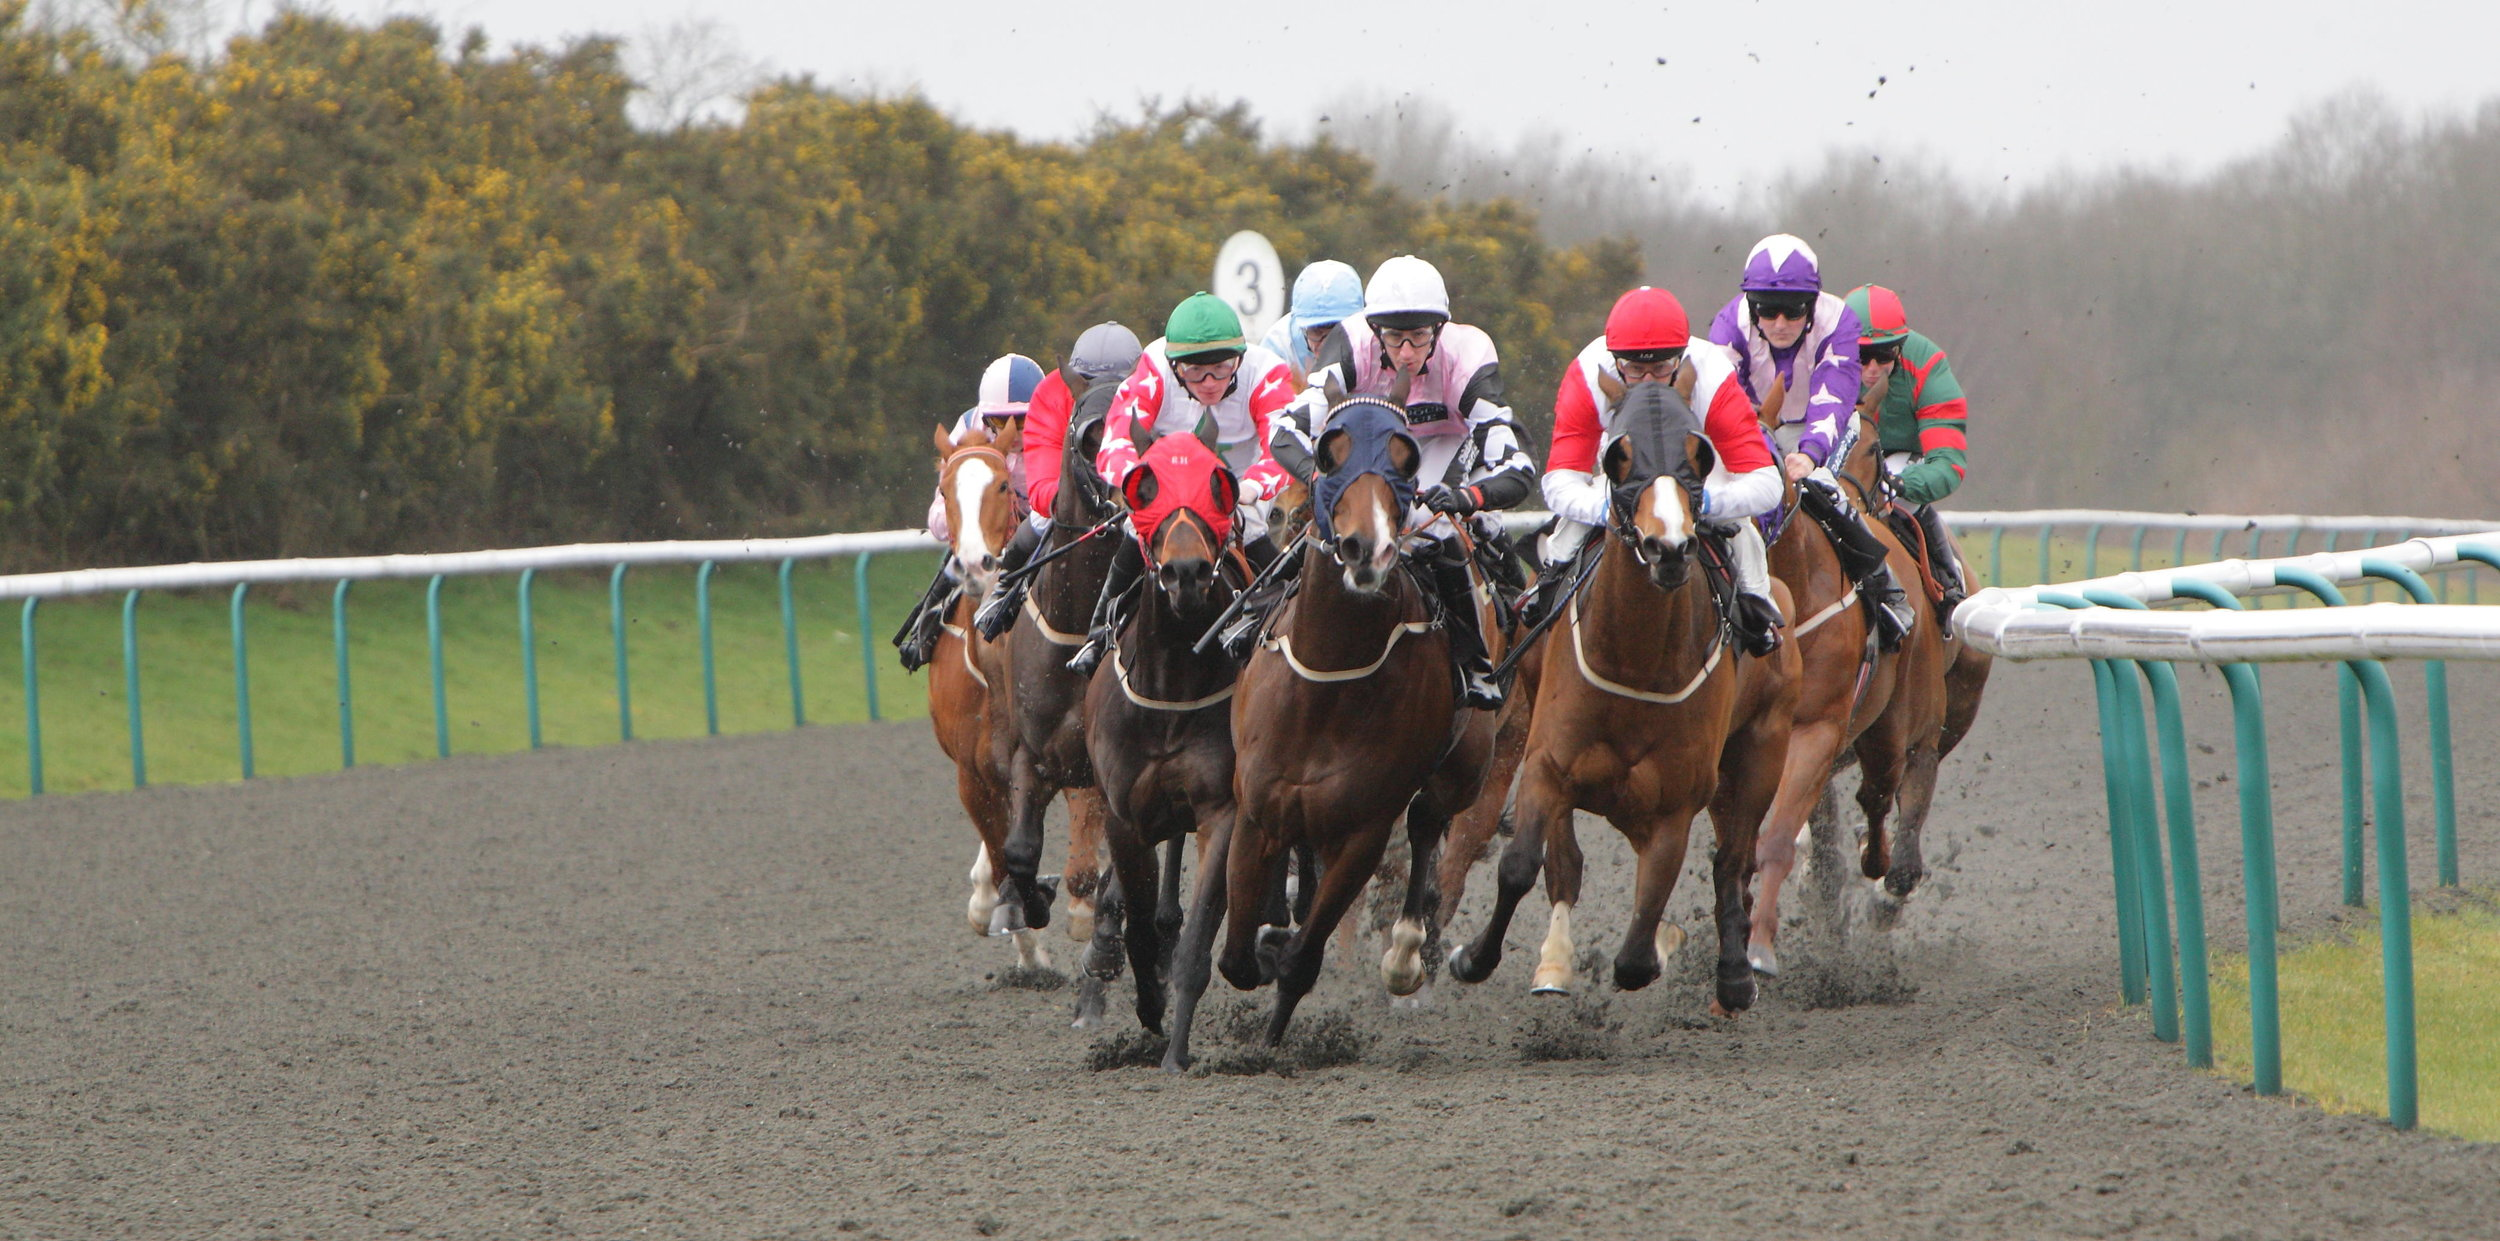 """Is All-Weather Racing No Longer The Poor Relation?      For much of 2018, racing fans waited with bated breath for the return of Enable. Musings on when and where the wonder mare would reappear were many and varied, but few predicted that the Arc De Triomphe heroine would make her seasonal debut at Kempton on the polytrack surface.     Almost two years prior, the regal Juddmonte homebred, who had garnered high regard at home, made her very first racecourse appearance on Newcastle's Tapeta track. That fateful day was the 28th of November 2016, when, of course, flat racing had left the turf for the winter months, narrowing John Gosden's choice to two: run his future star on the all-weather, or not until March.     Gosden did, however, have turf options in September of 2018, and when quizzed on the decision to run a then five-time Gp1 winner on the all-weather, he had no hesitation: """"We had aimed Enable at York, but it came about a week or ten days too early, so Kempton came at exactly the right time. The fact that it was on the all-weather didn't concern me, as I knew exactly what I was going to get.""""     For Enable's return in the Gp3 September Stakes, the going was described as standard to slow, whereas on the very same day, Ascot raced on good to firm (good in places), while the going at Haydock was heavy. There are few surprises in the going on the all-weather; after all, the clue is in the name, and its consistency is very much appreciated by John Gosden, who says, """"When the ground goes too firm in the summer, or during drought, or it becomes bottomless at the end of autumn, the all-weather is a nice place to be. It's consistent, with bounce, and you can ride a proper race on it.""""     It would, however, be unfair to look at all-weather racing as one entity, with """"all-weather"""" encompassing various surfaces, mainly fibresand, polytrack and Tapeta™. Not only this, but each racecourse has its own shape and quirks, as well as its own race programme. Just as on the tur"""